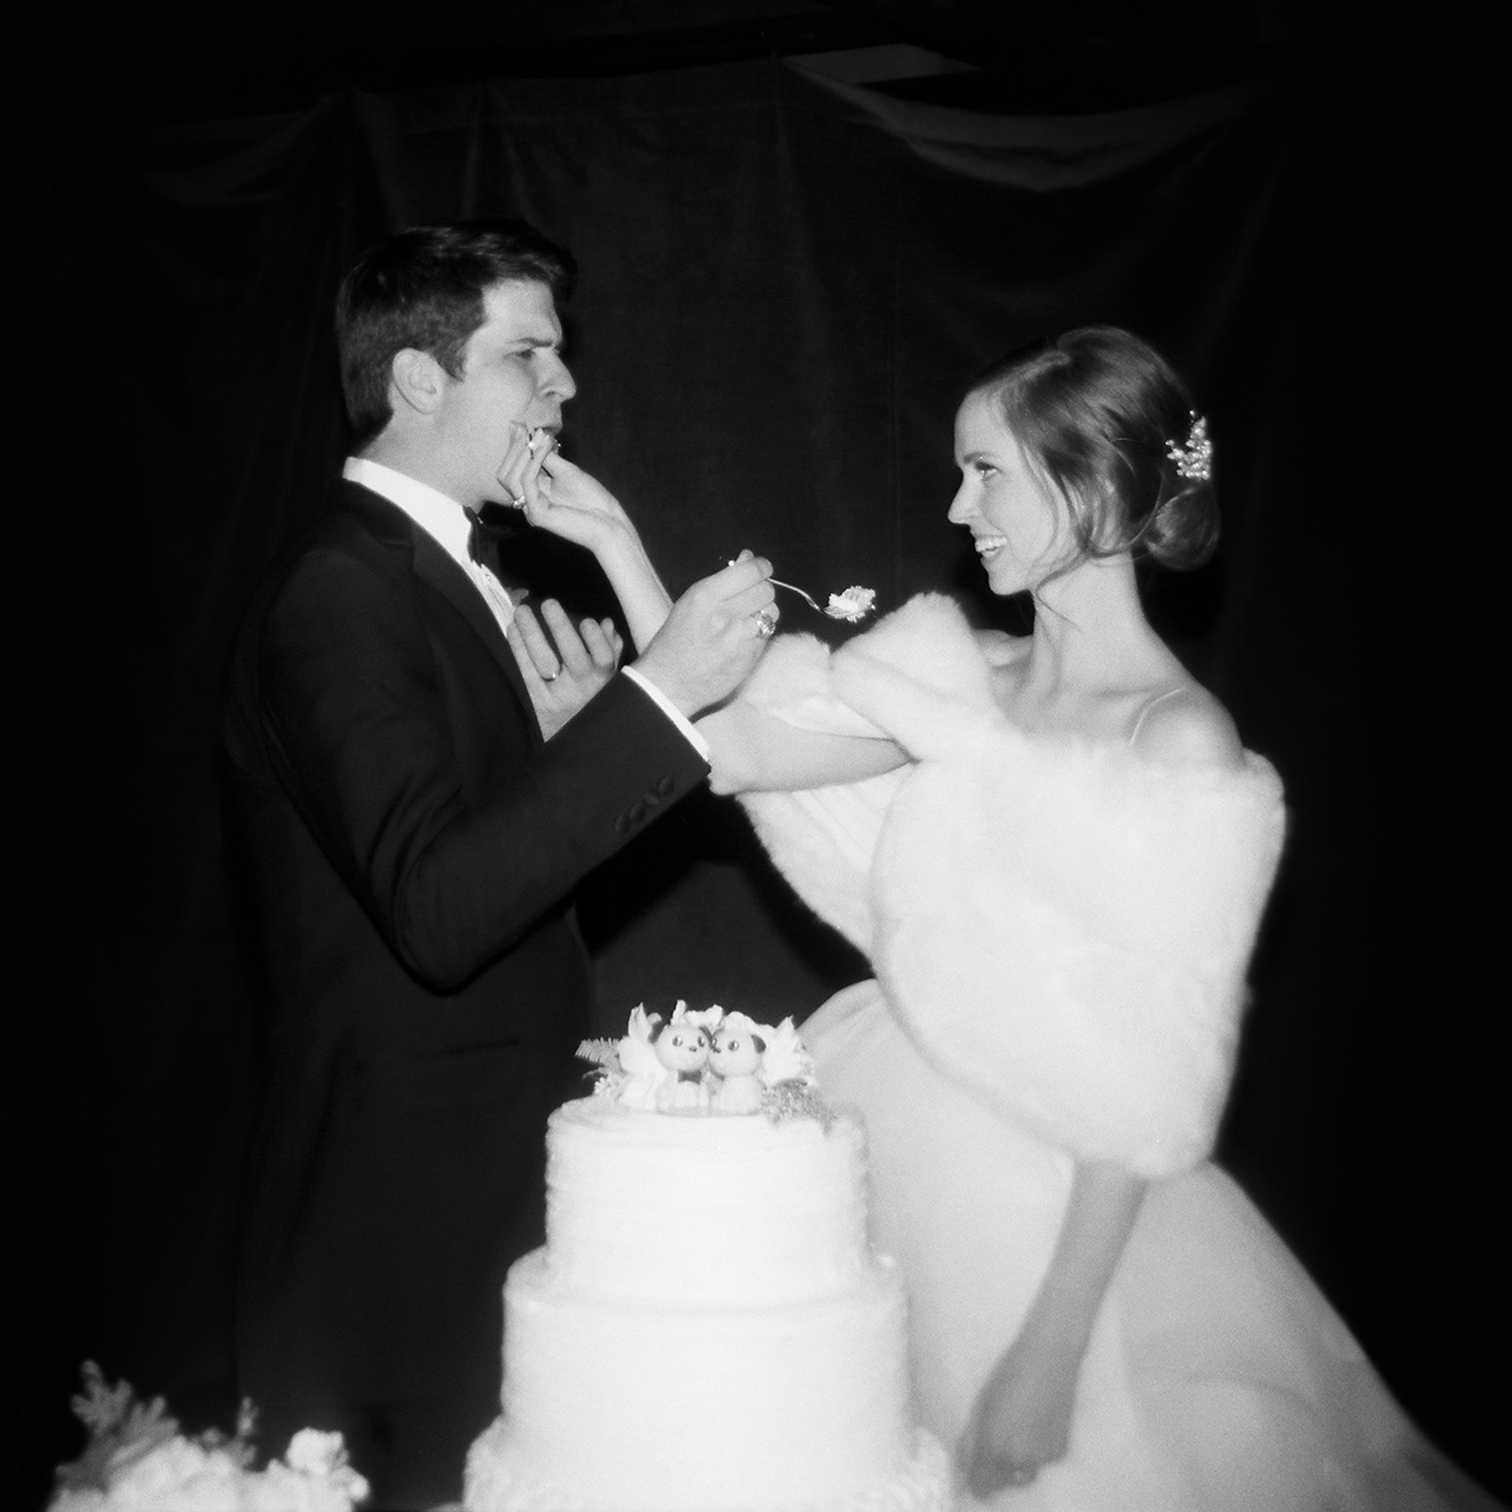 Telluride Summer Weddings, Gorrono Ranch, Destination Wedding, Film Photography, Holga, Cake Cutting